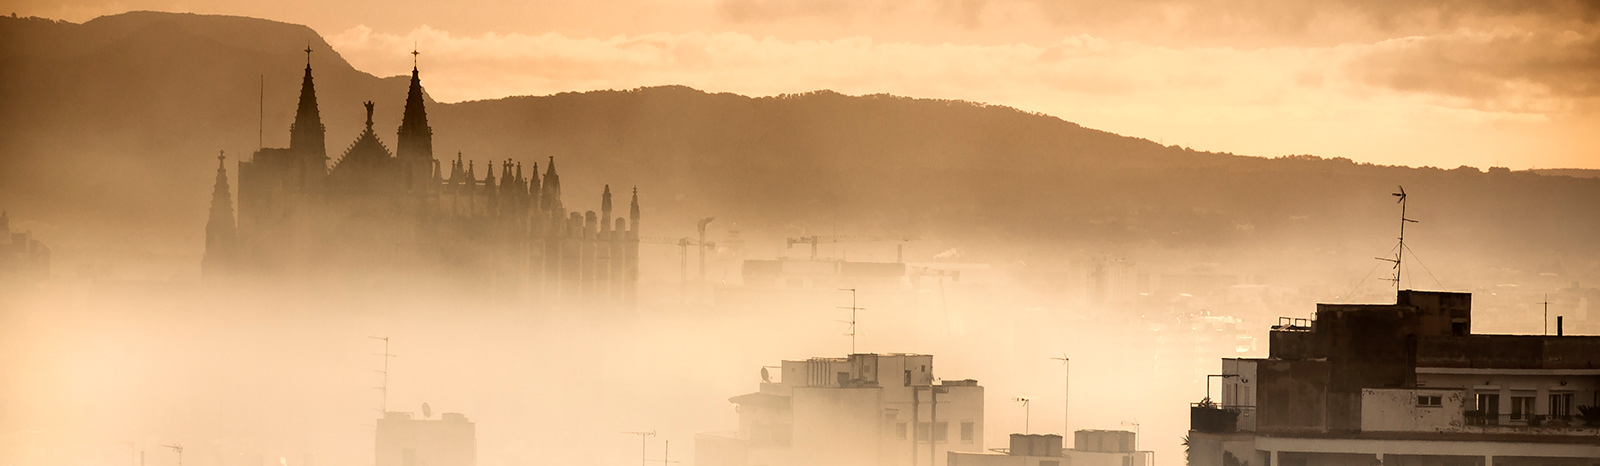 Cathedral of Palma de Mallorca in the mist